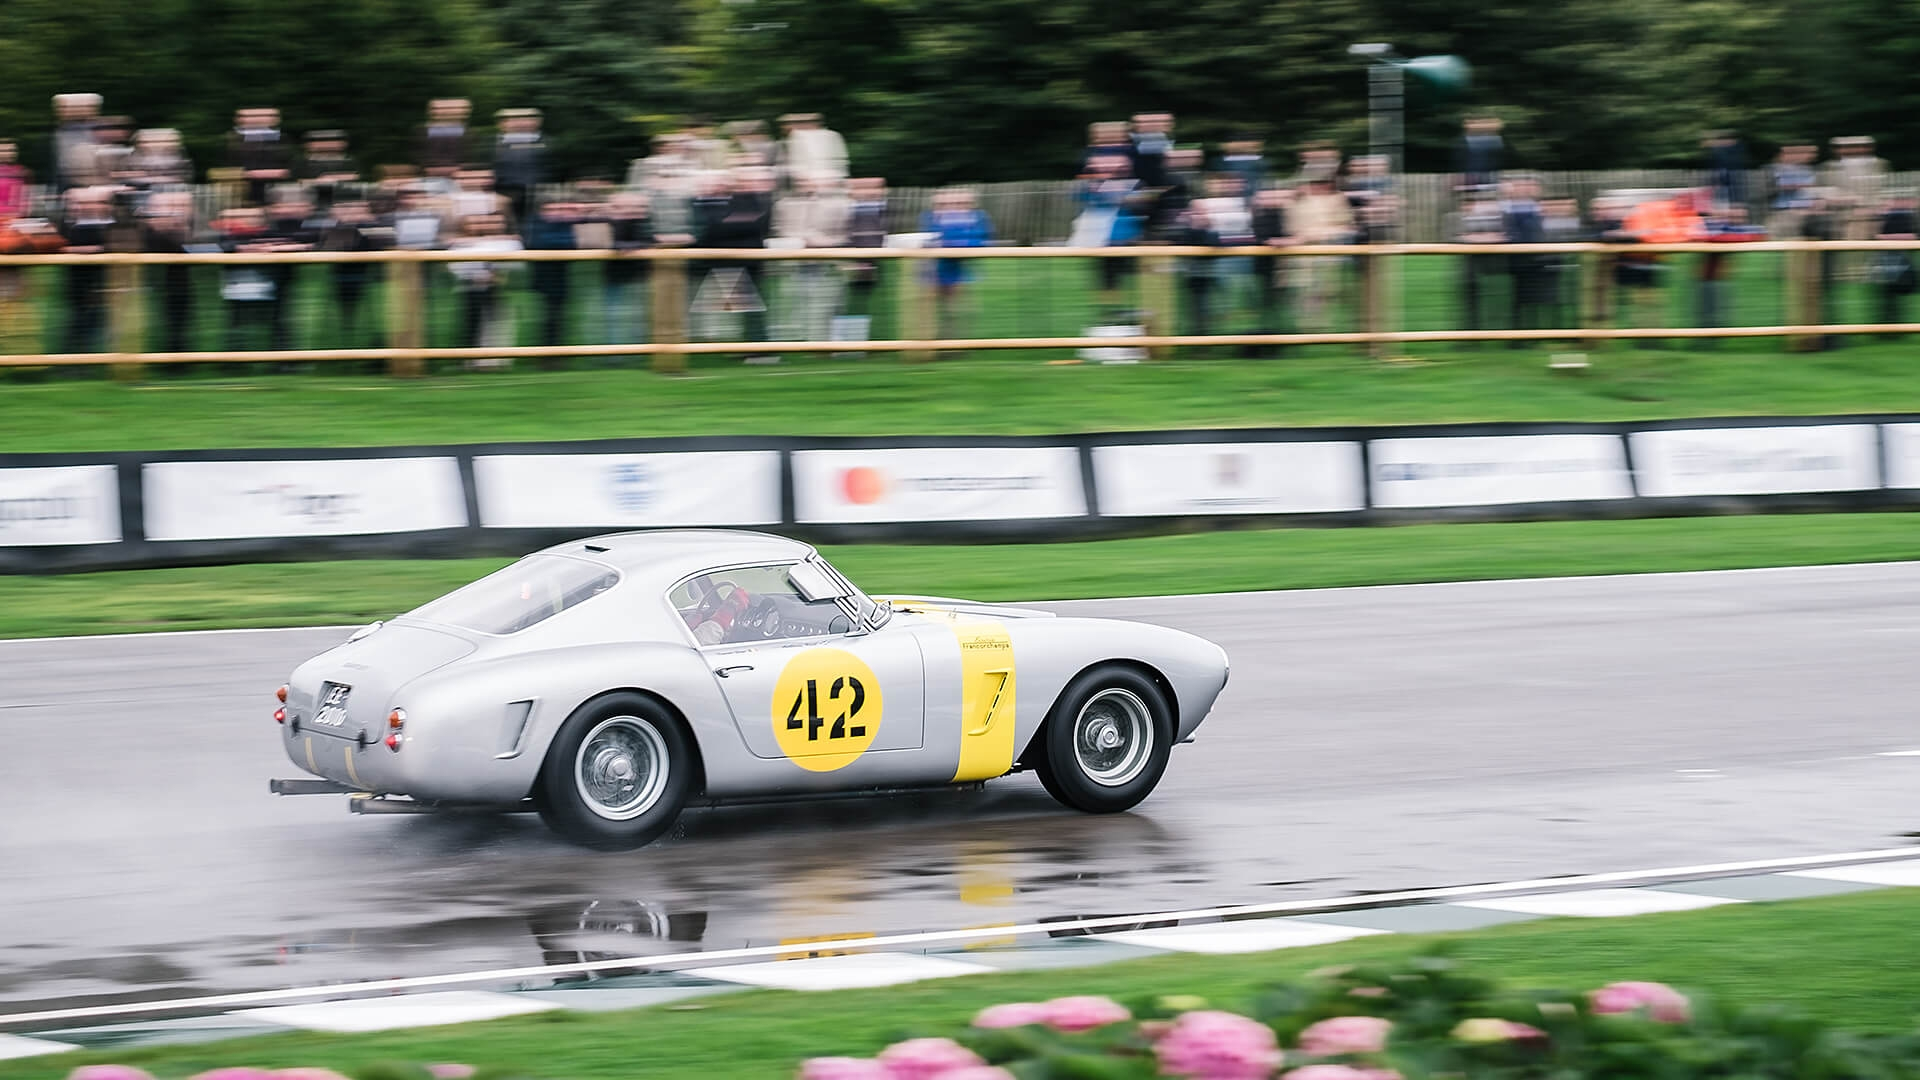 2017 Goodwood Revival: The fun starts here...